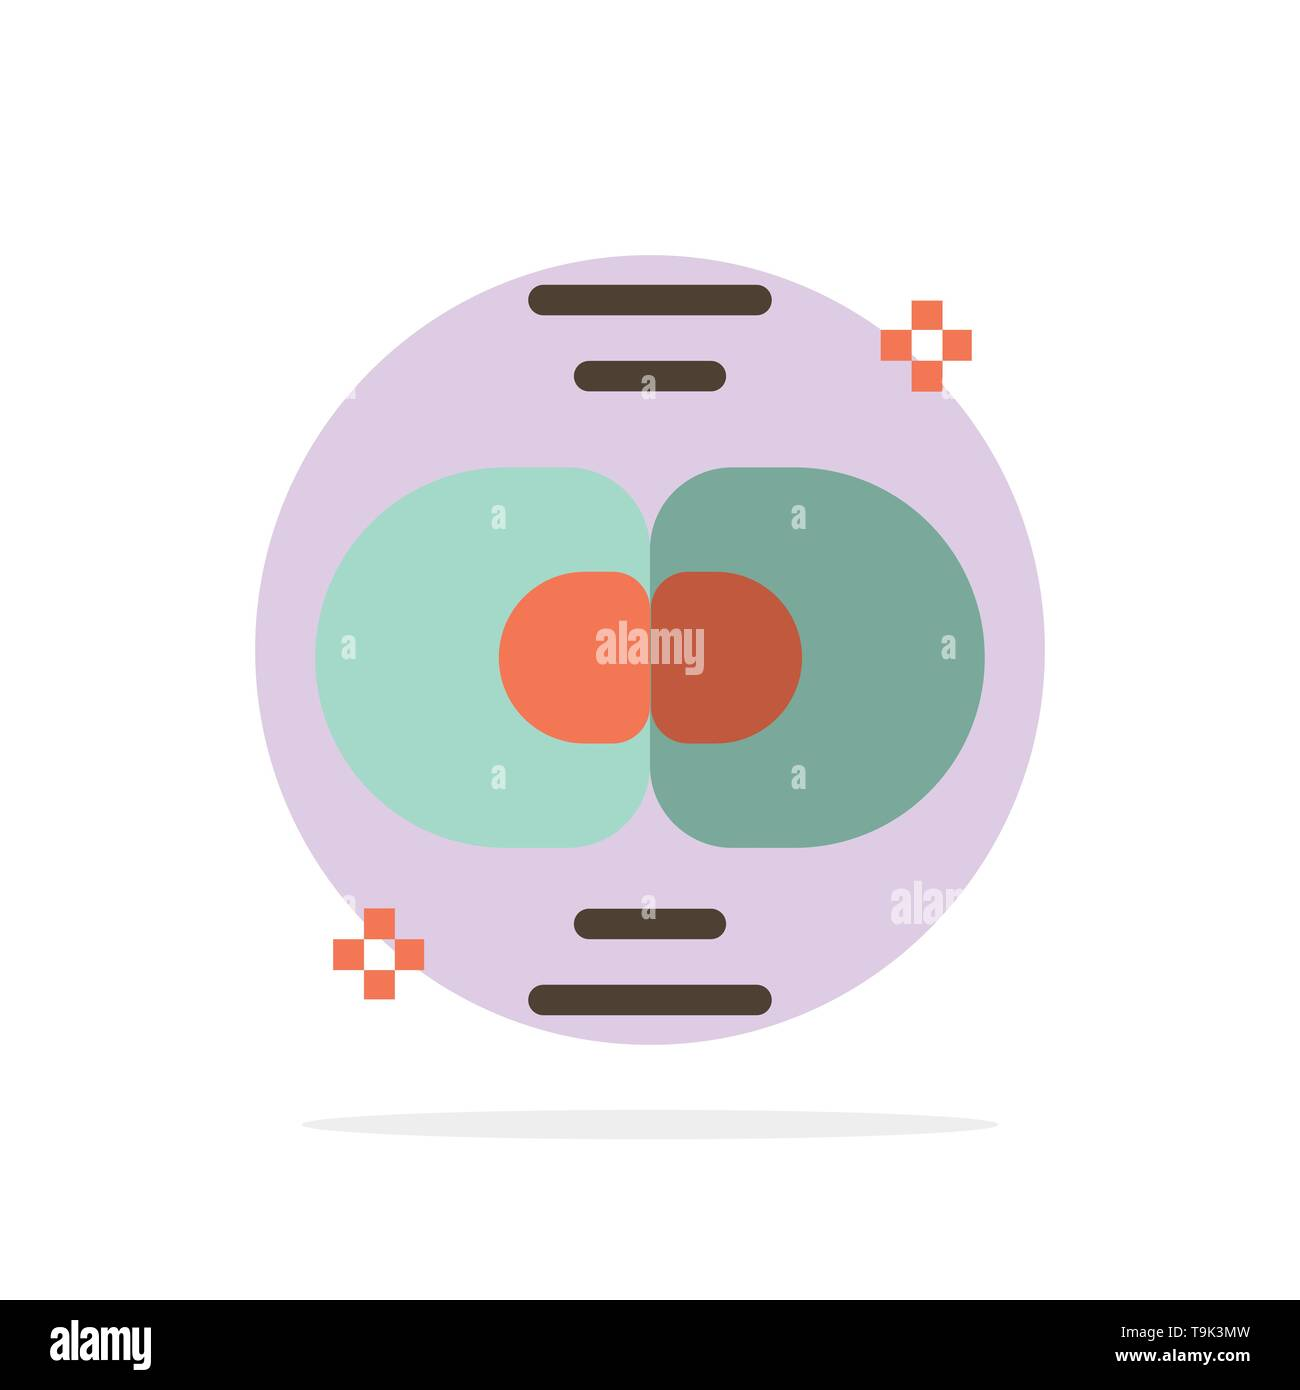 Biochemistry, Biology, Cell, Chemistry, Division Abstract Circle Background Flat color Icon - Stock Image